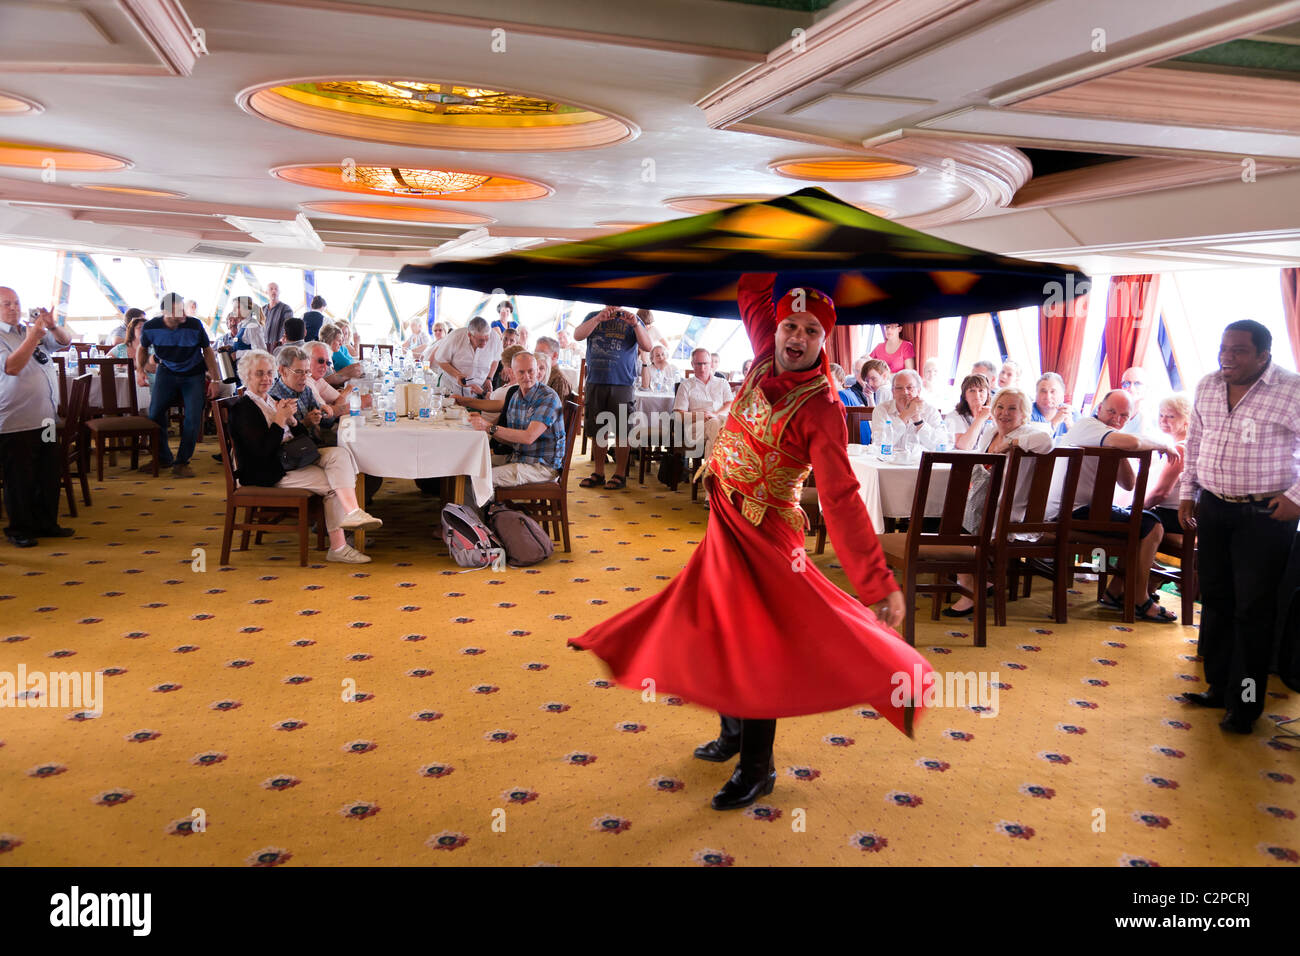 A WHIRLING DERVISH ENTERTAINING TOURISTS ON A NILE RIVER BOAT, - Stock Image